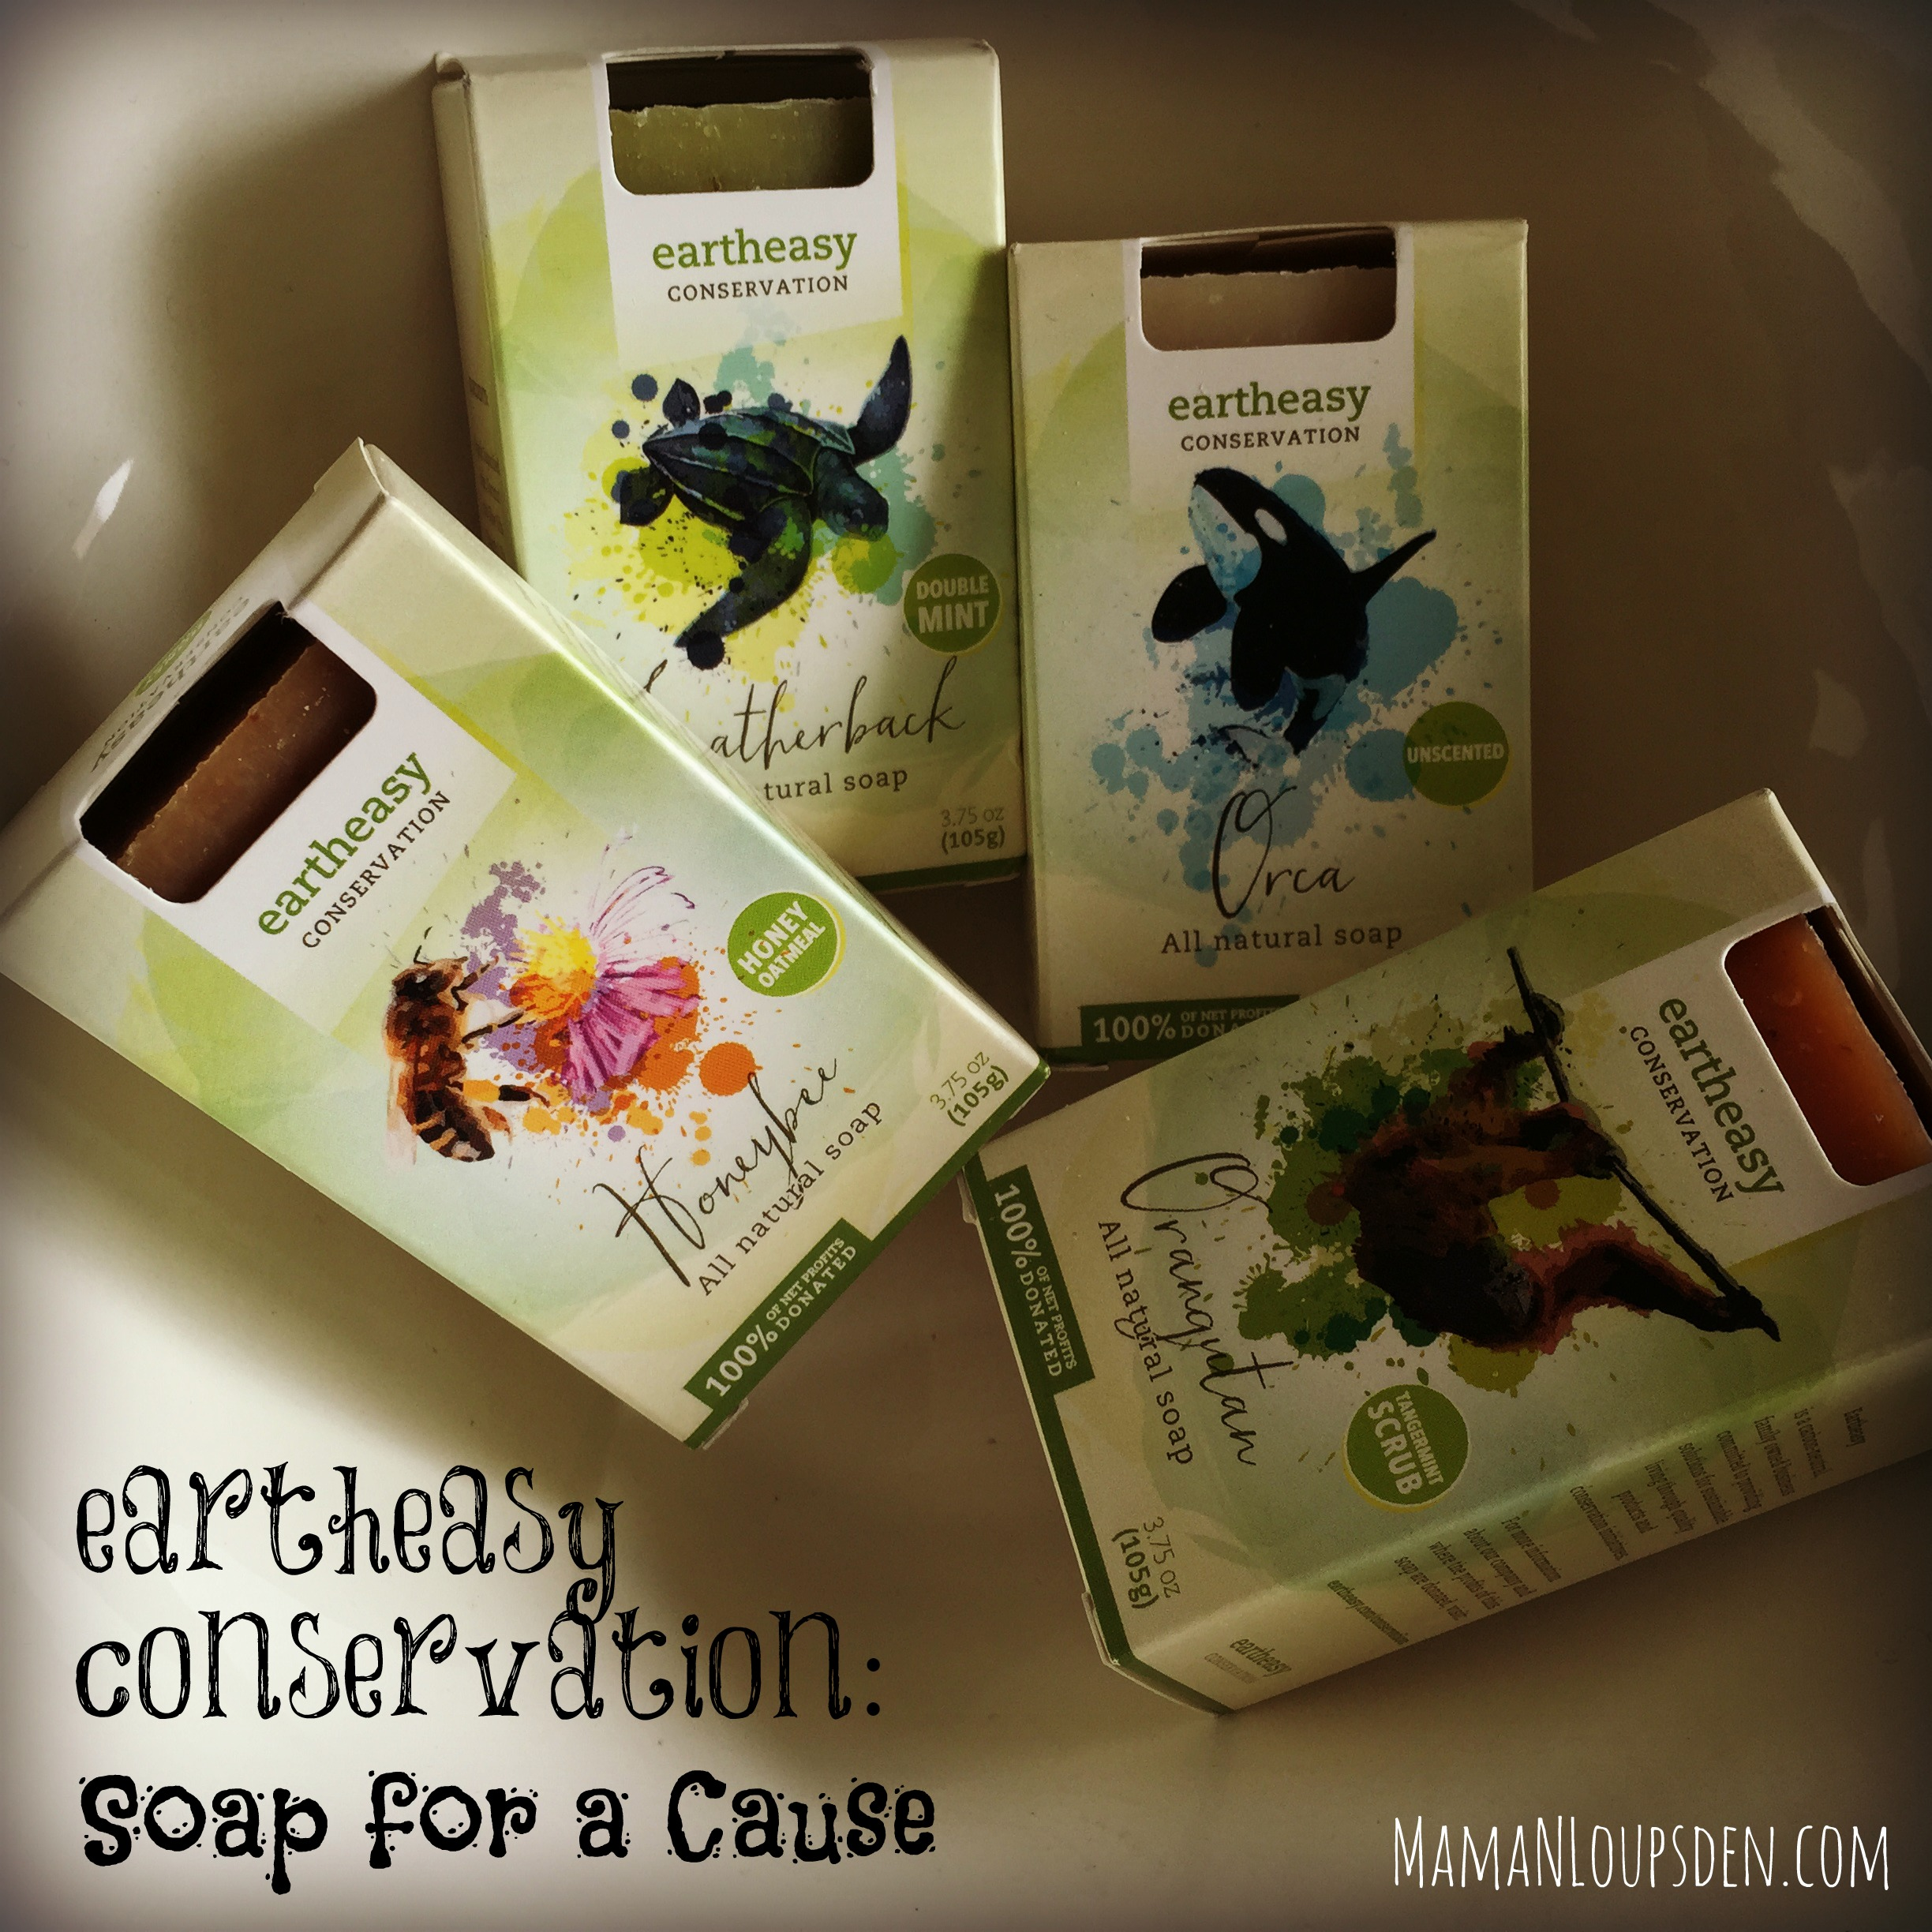 eartheasy conservation soap for a cause